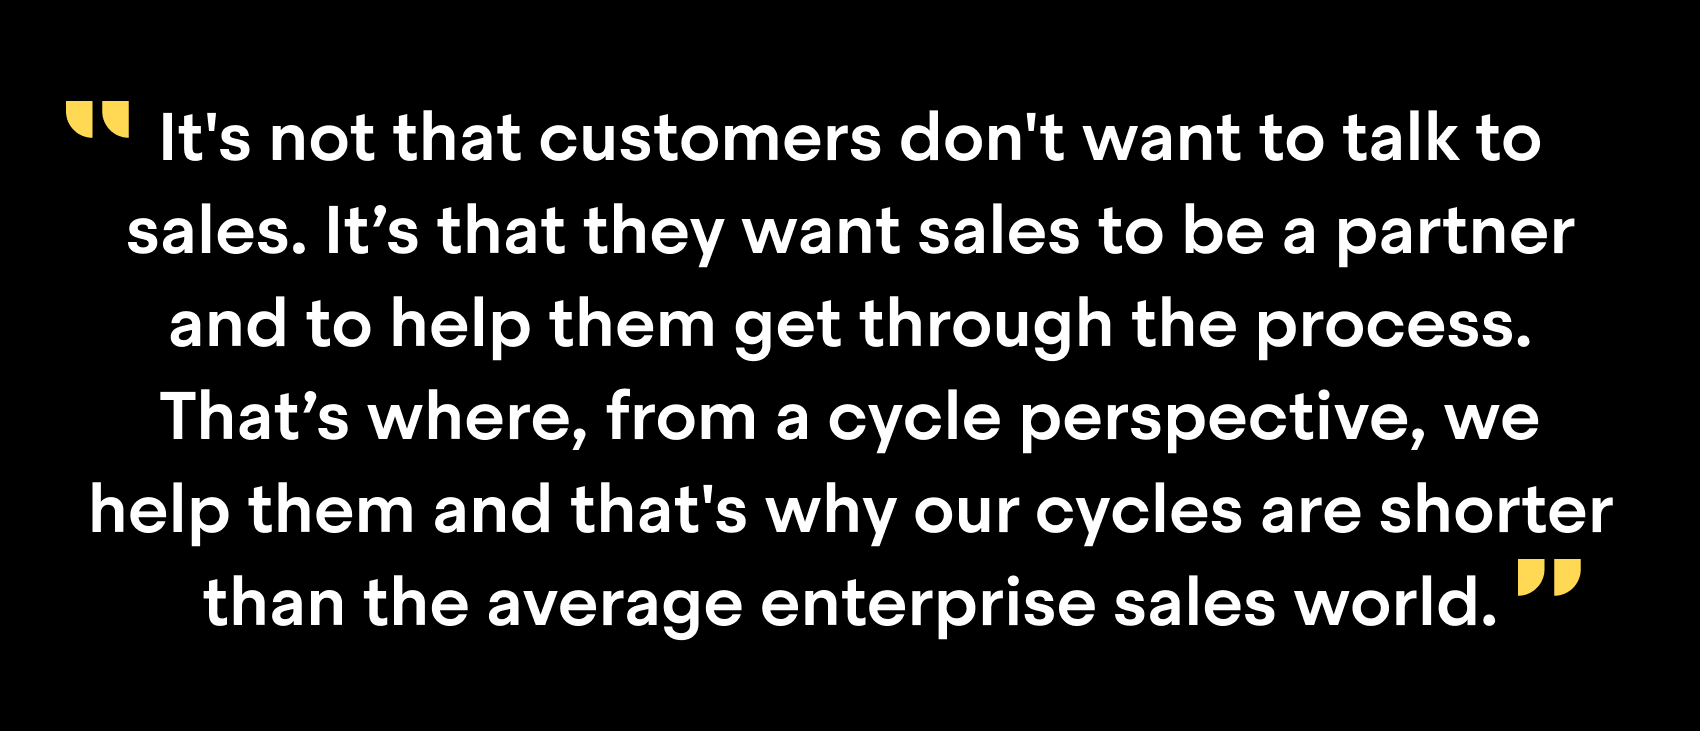 """It's not that customers don't want to talk to sales. It's that they want sales to be a partner and to help them get through the process. That's where, from a cycle perspective, we help them and that's why our cycles are shorter than the average enterprise sales world."""